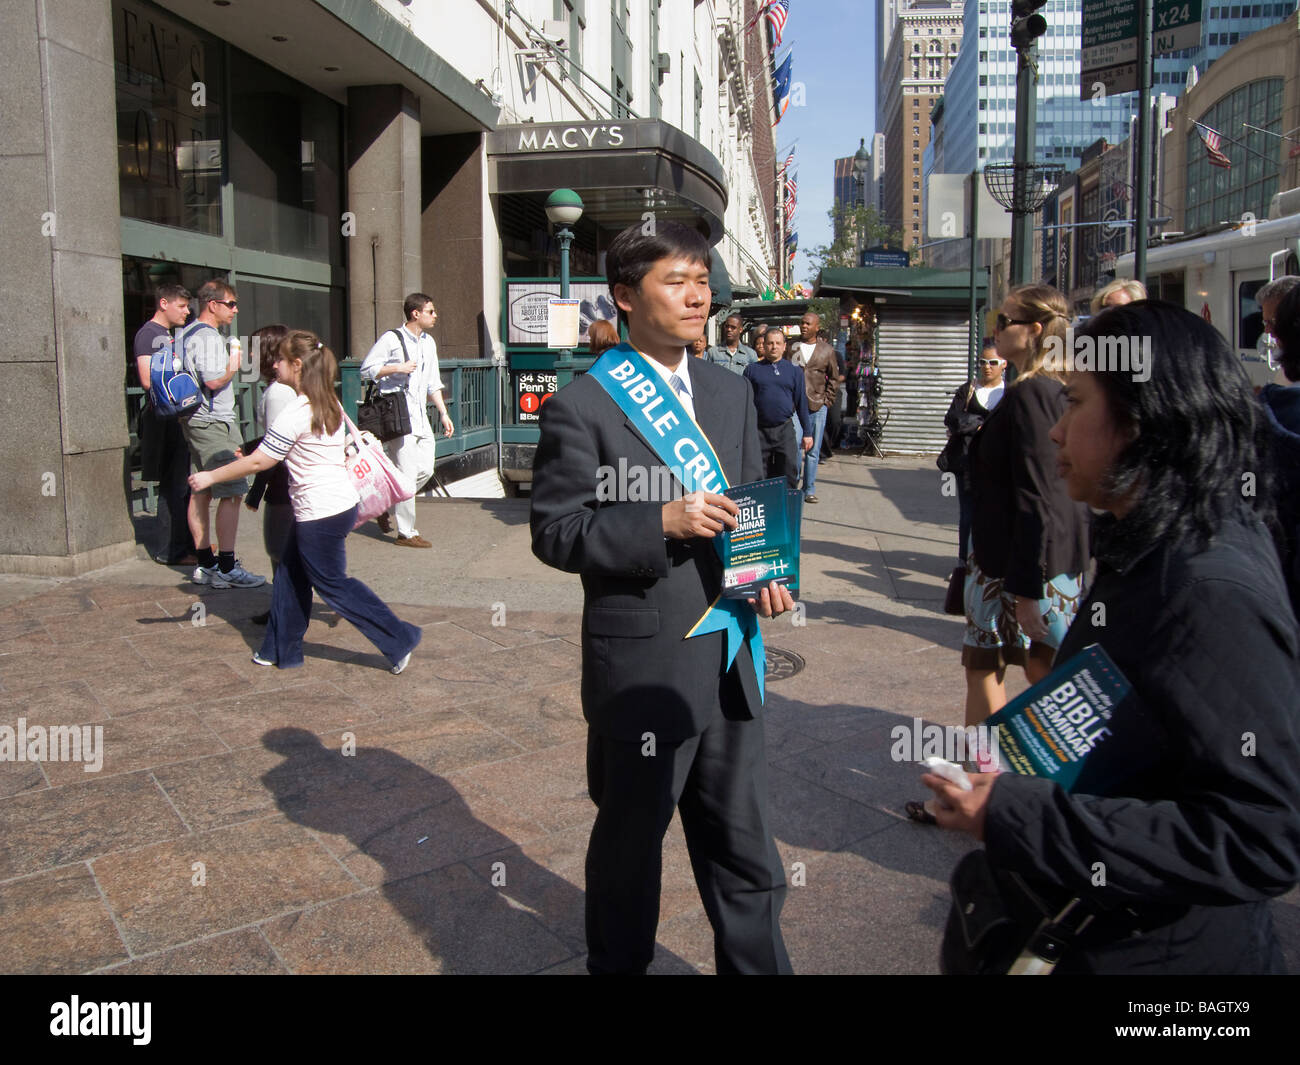 Evangelical Christians in New York promoting their Bible Crusade near Macy s on Sunday April 19 2009 Richard B Levine - Stock Image